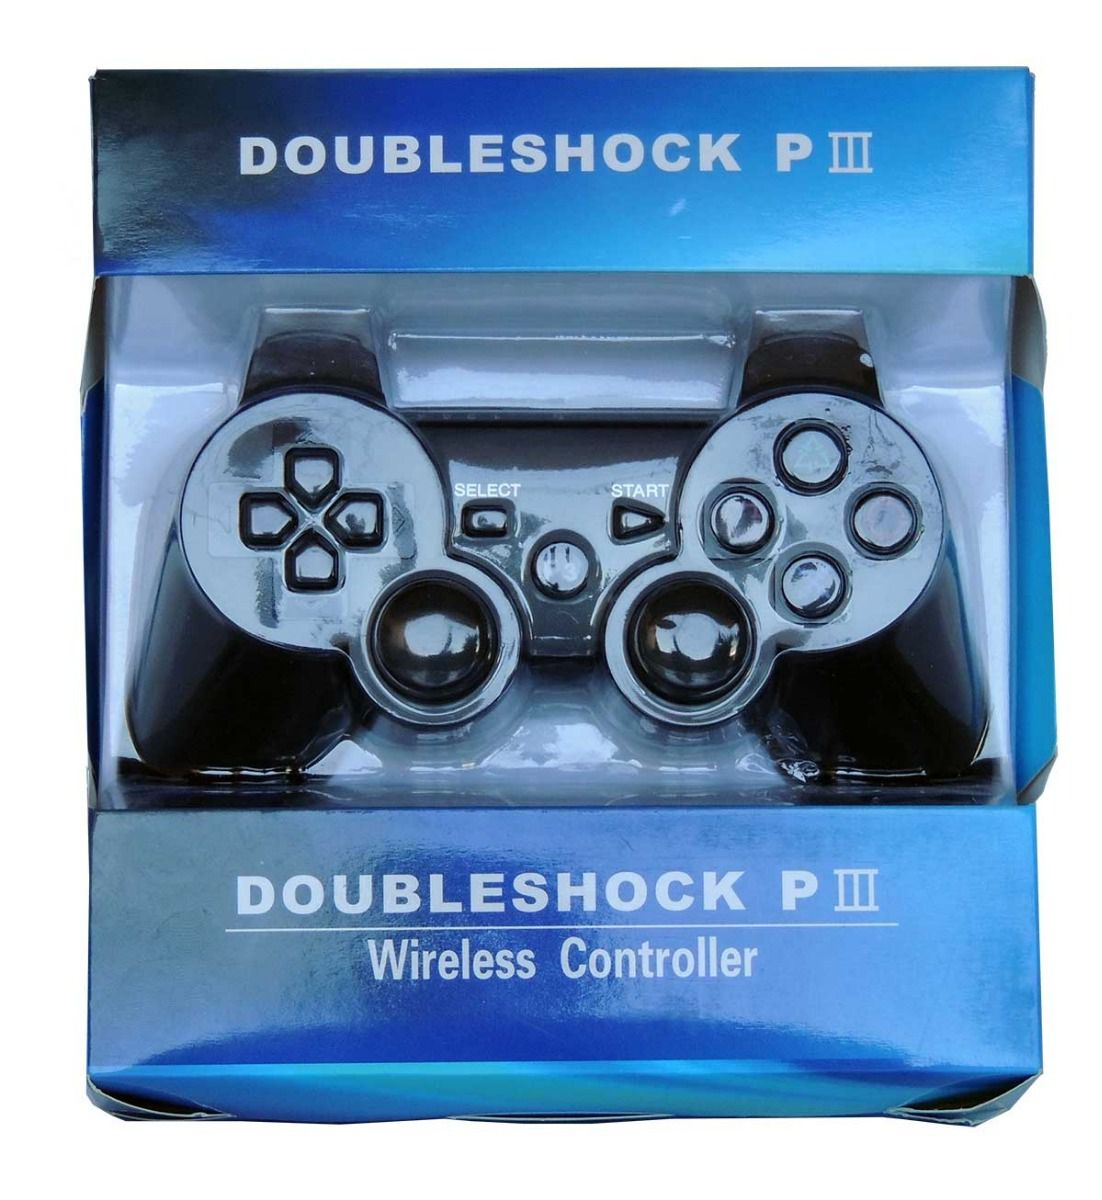 Controle Ps3 Sem Fio Doubleshock Playstation 3 Wireless P-209